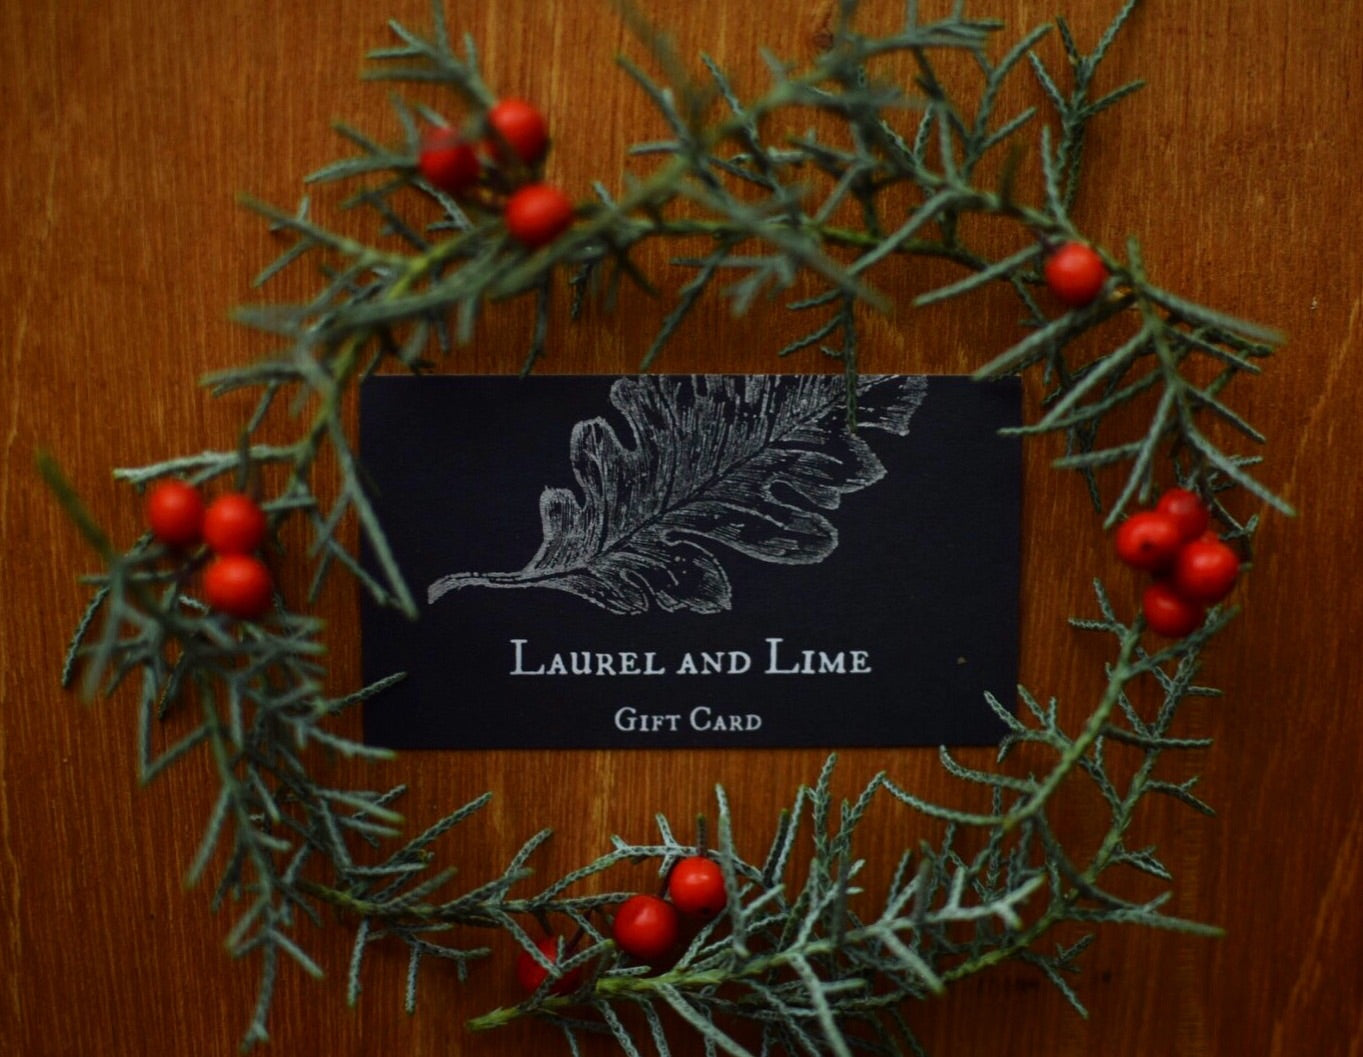 Laurel and Lime Gift Card